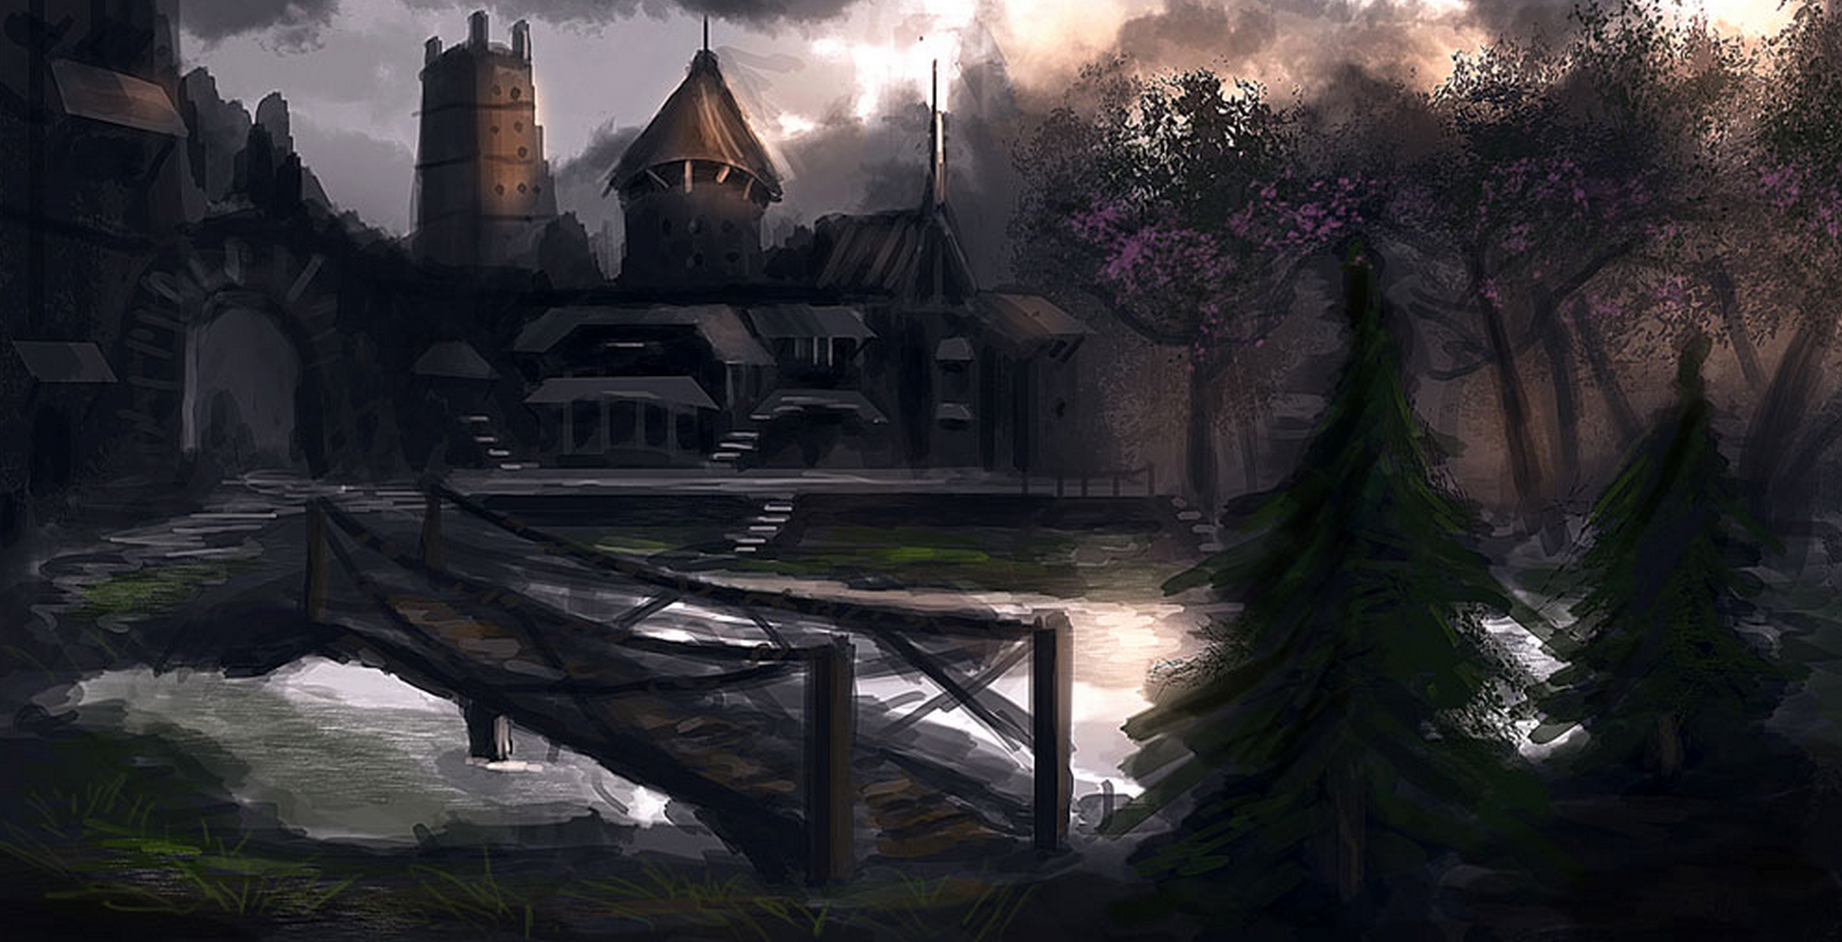 Forest_Town_by_dustycrosley_on_deviantART.png